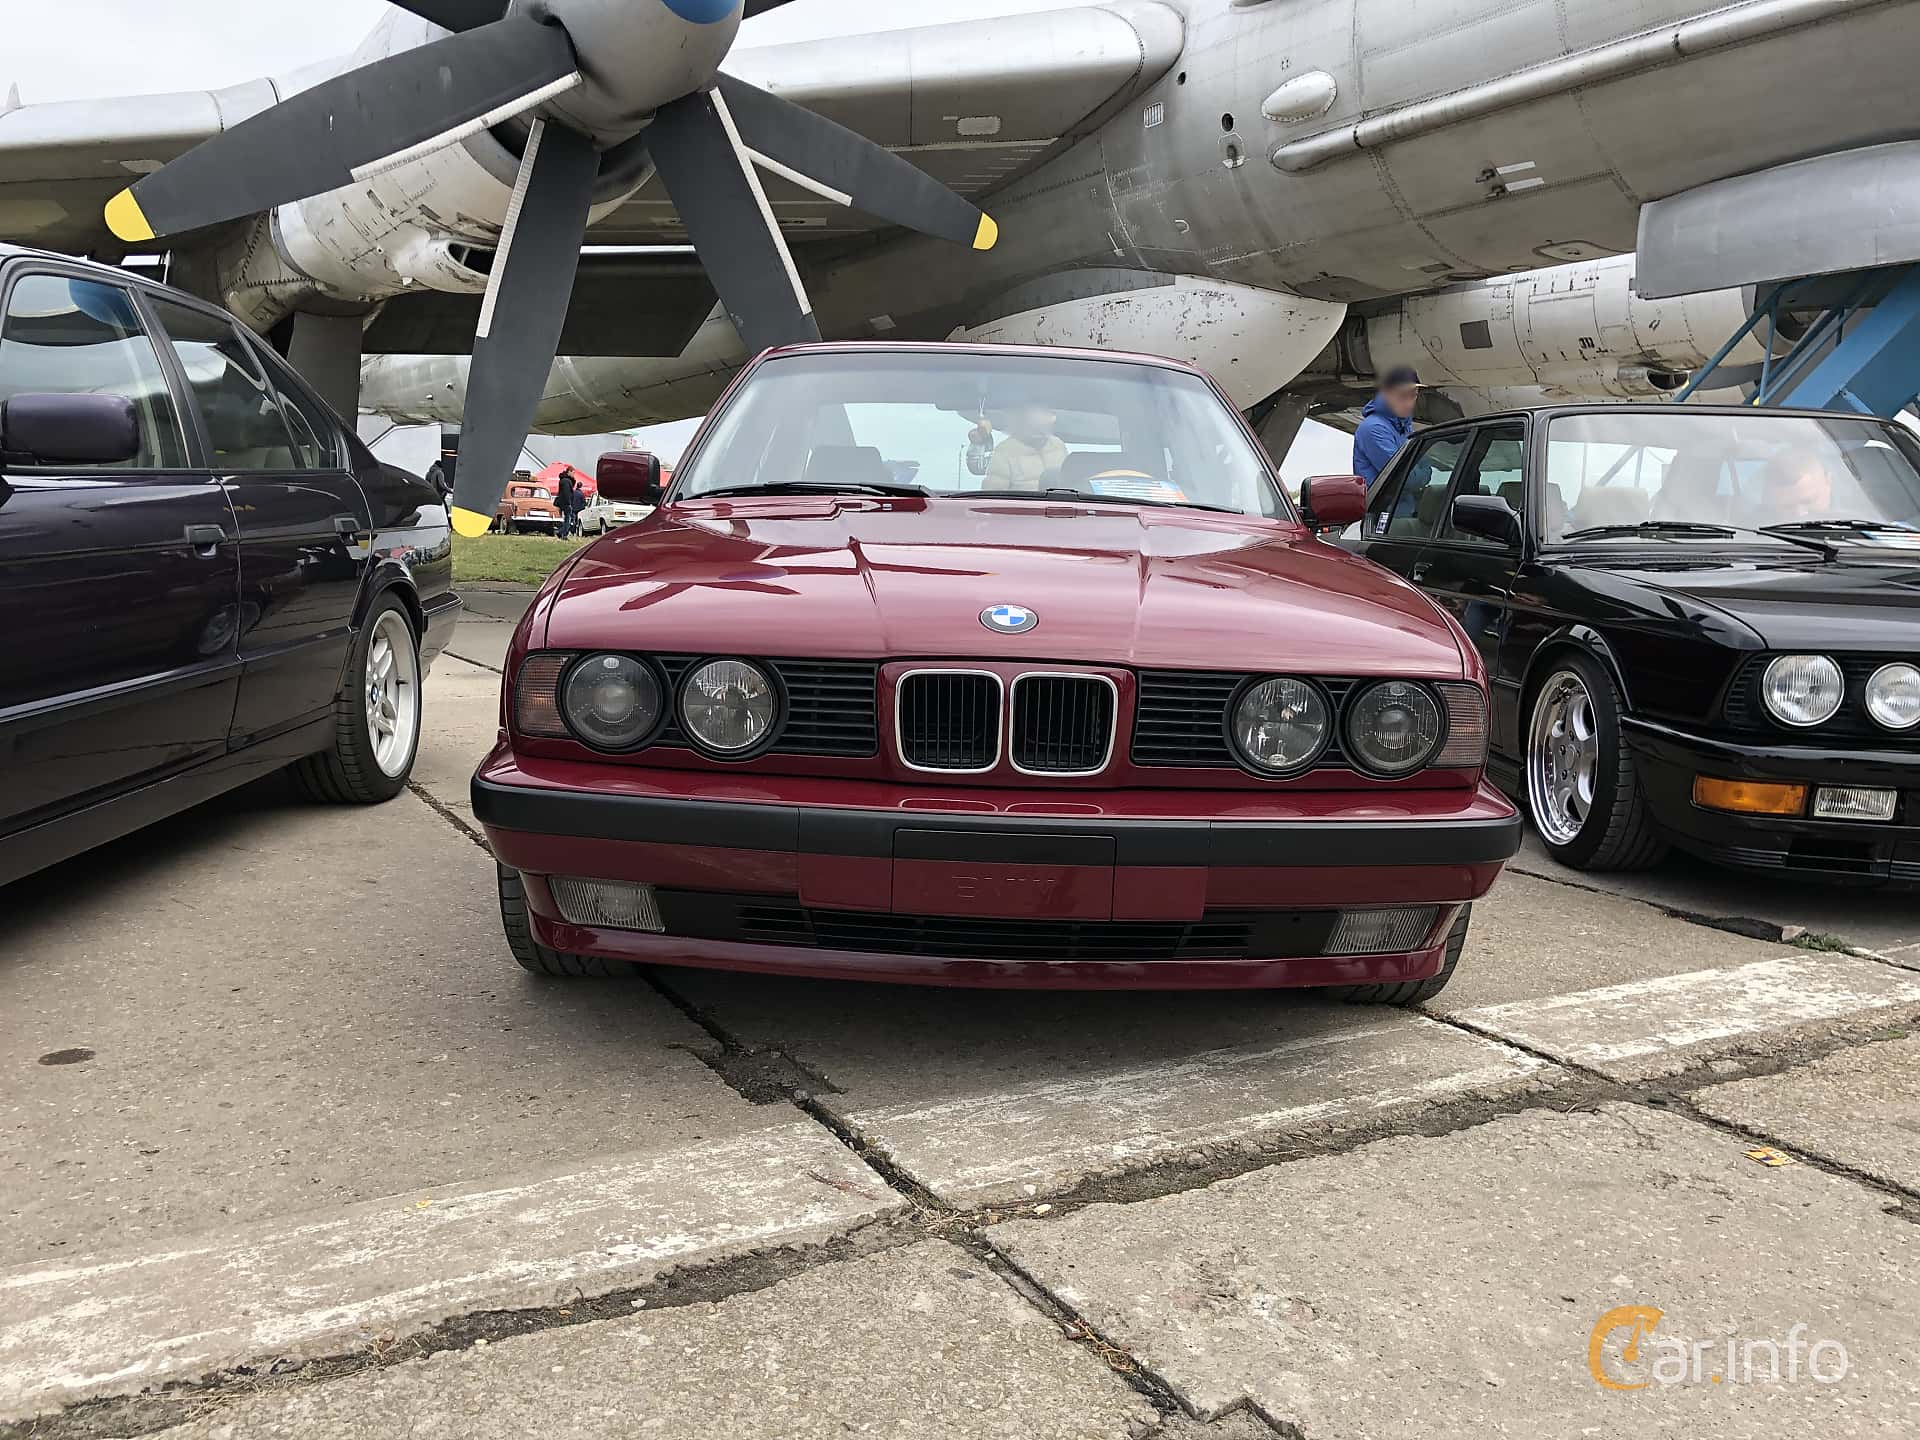 3 Images Of Bmw 535i Sedan 211hp 1989 By Martochie